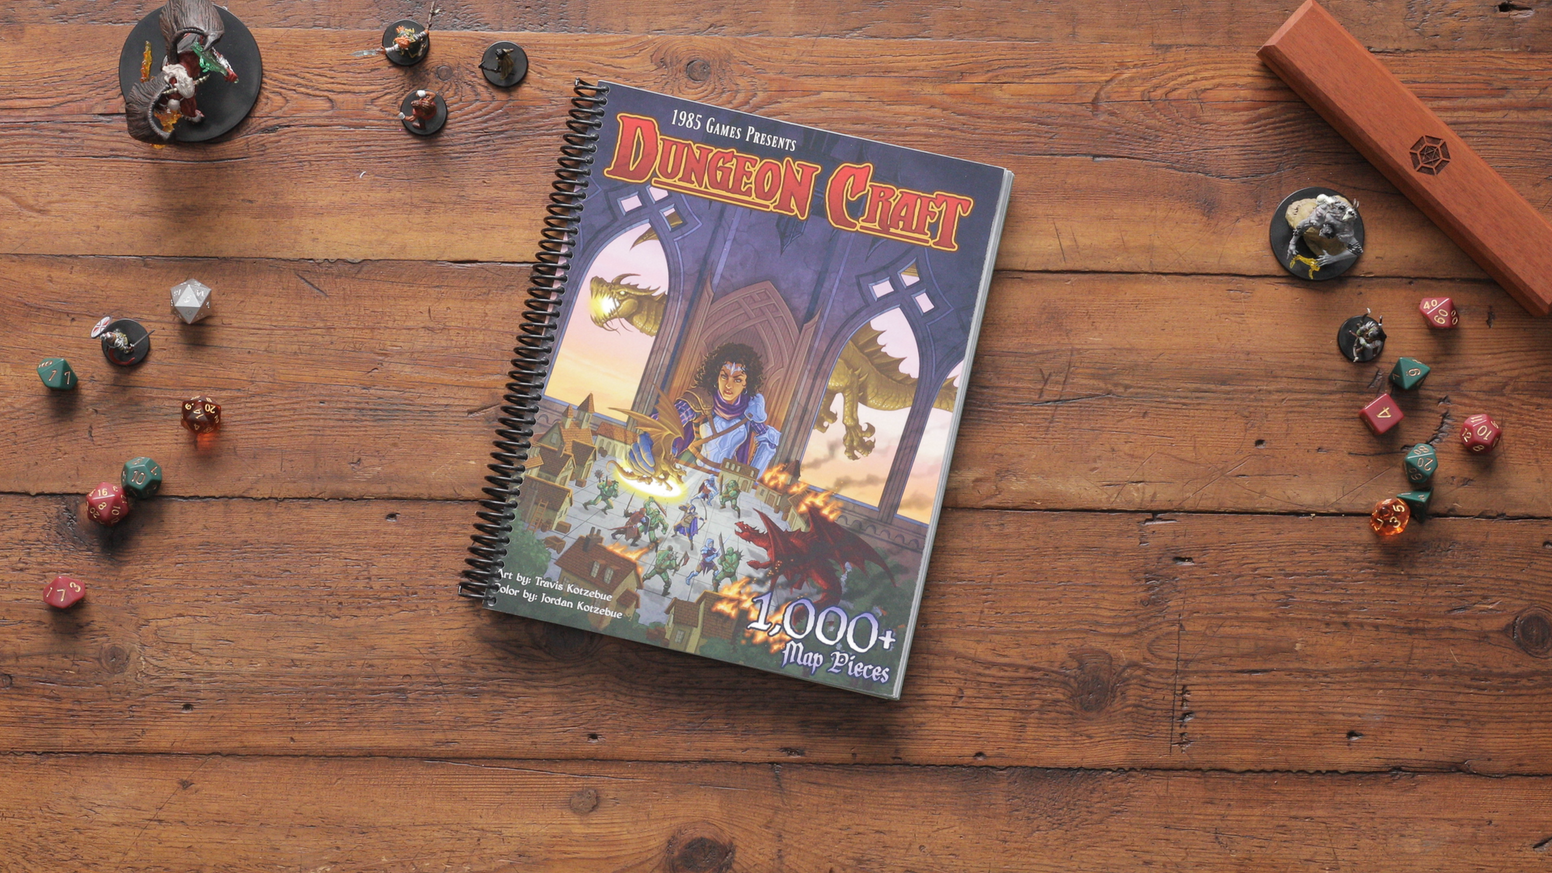 A book that has over 1,000 terrain pieces for you to use in Dungeons & Dragons.